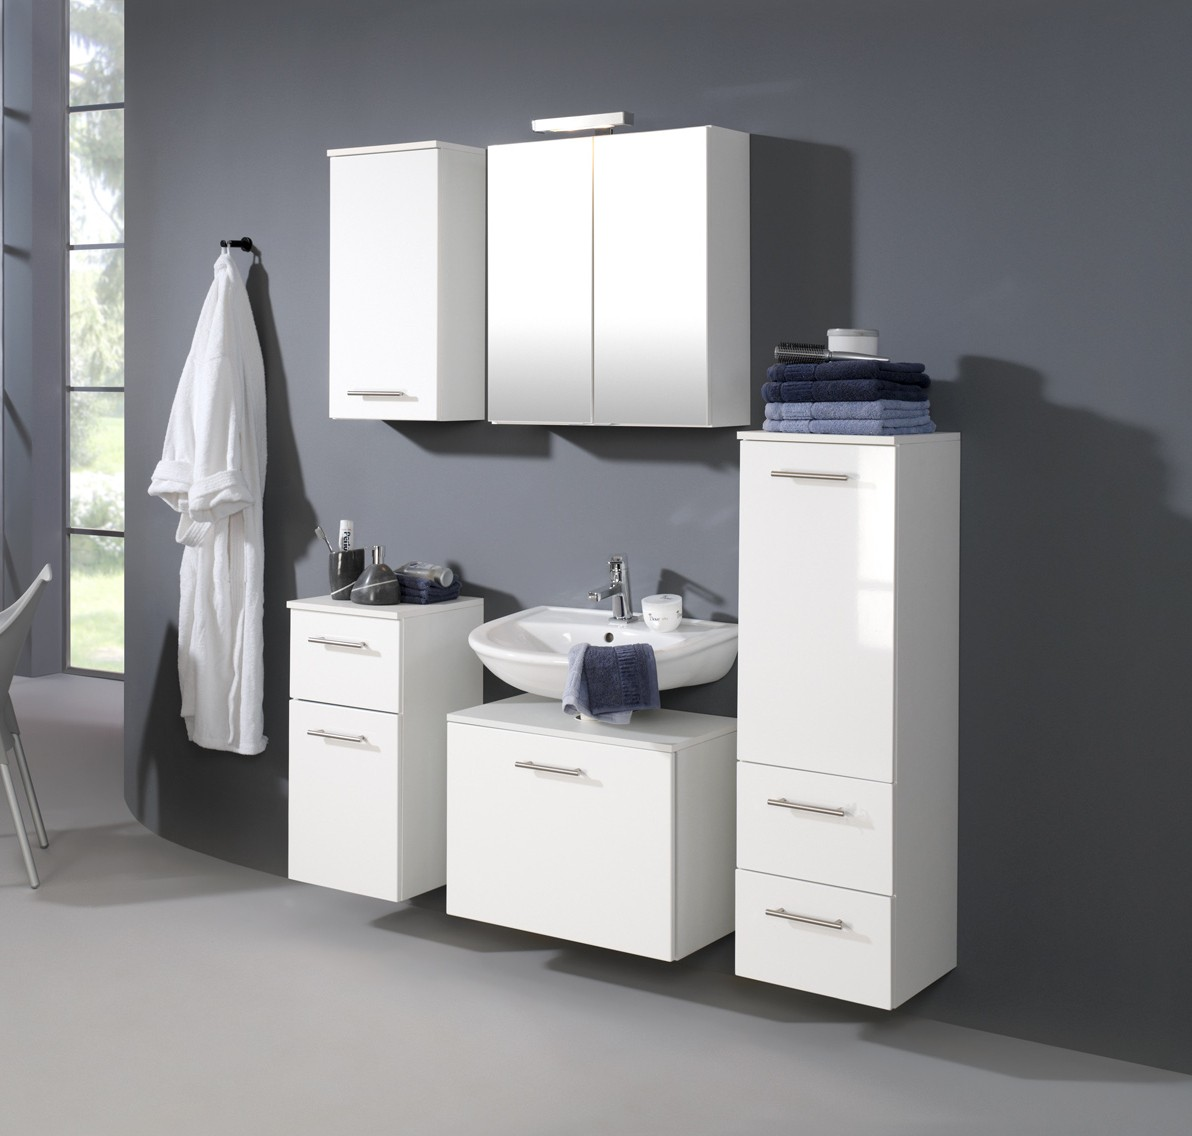 bad unterschrank blanco 1 t rig 1 schublade 35 cm breit hochglanz wei bad bad unterschr nke. Black Bedroom Furniture Sets. Home Design Ideas